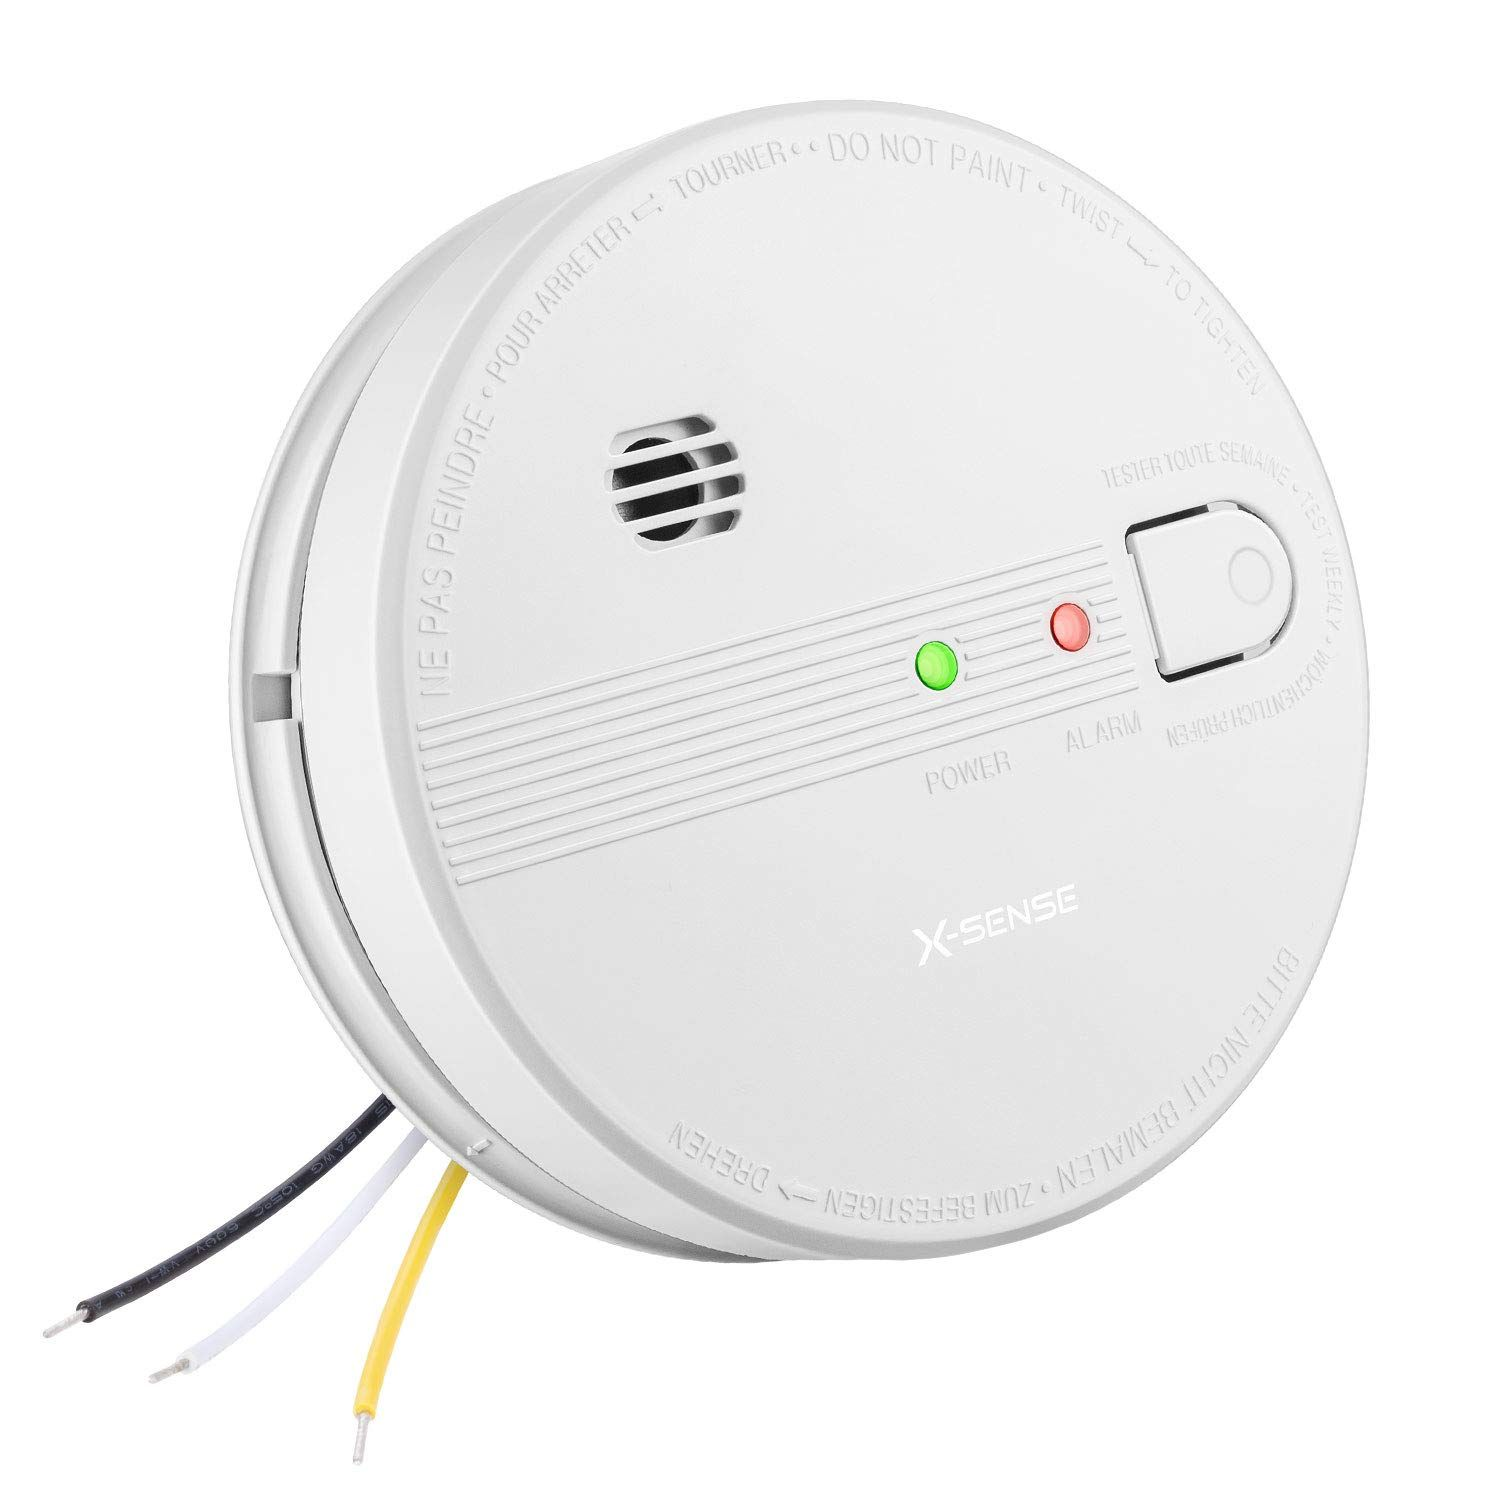 X Sense Sd21 10 Year Smoke Detector Ul Listed Interconnected Fire Alarm With Battery Backup And Photoelectric S Photoelectric Sensor Fire Alarm Battery Backup